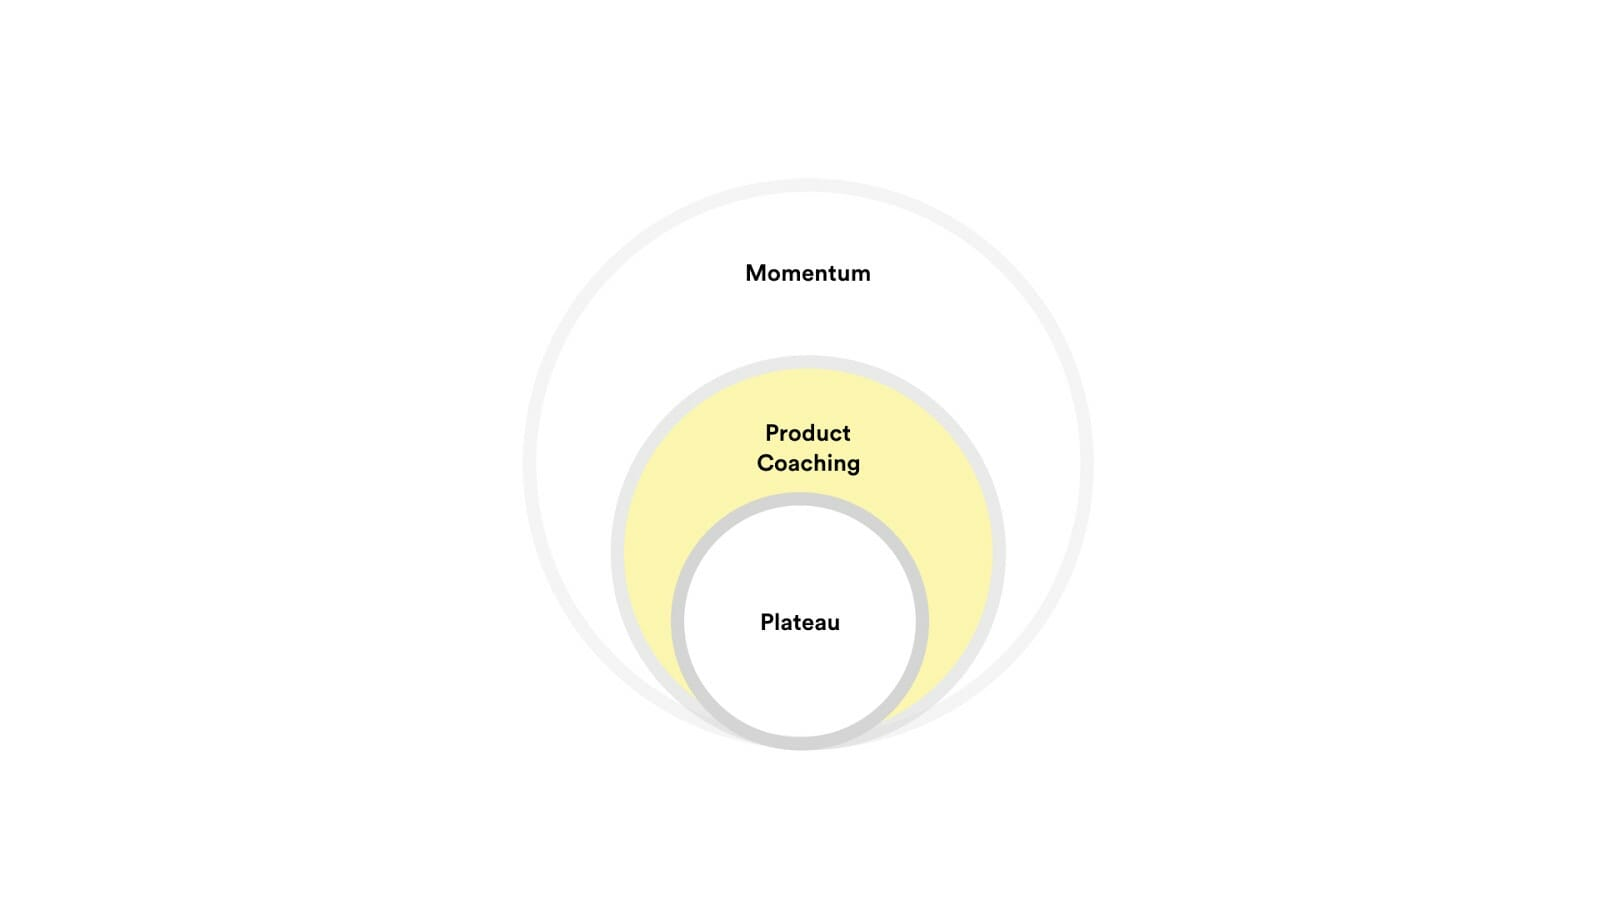 A diagram showing Product Coaching existing between a plateau and momentum